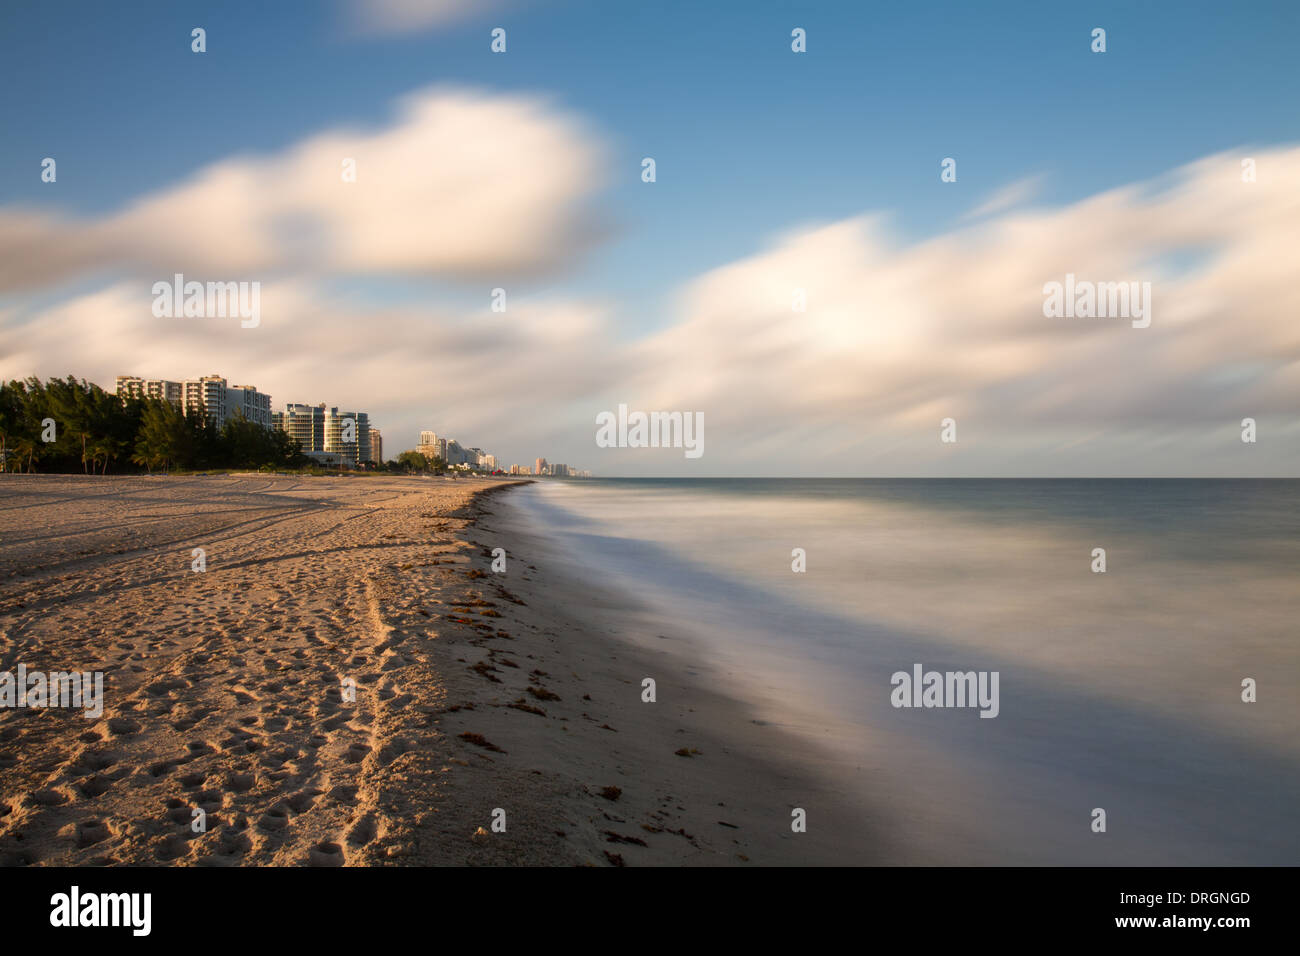 Empty beach at Fort Lauderdale - Long Exposure version, Florida Stock Photo